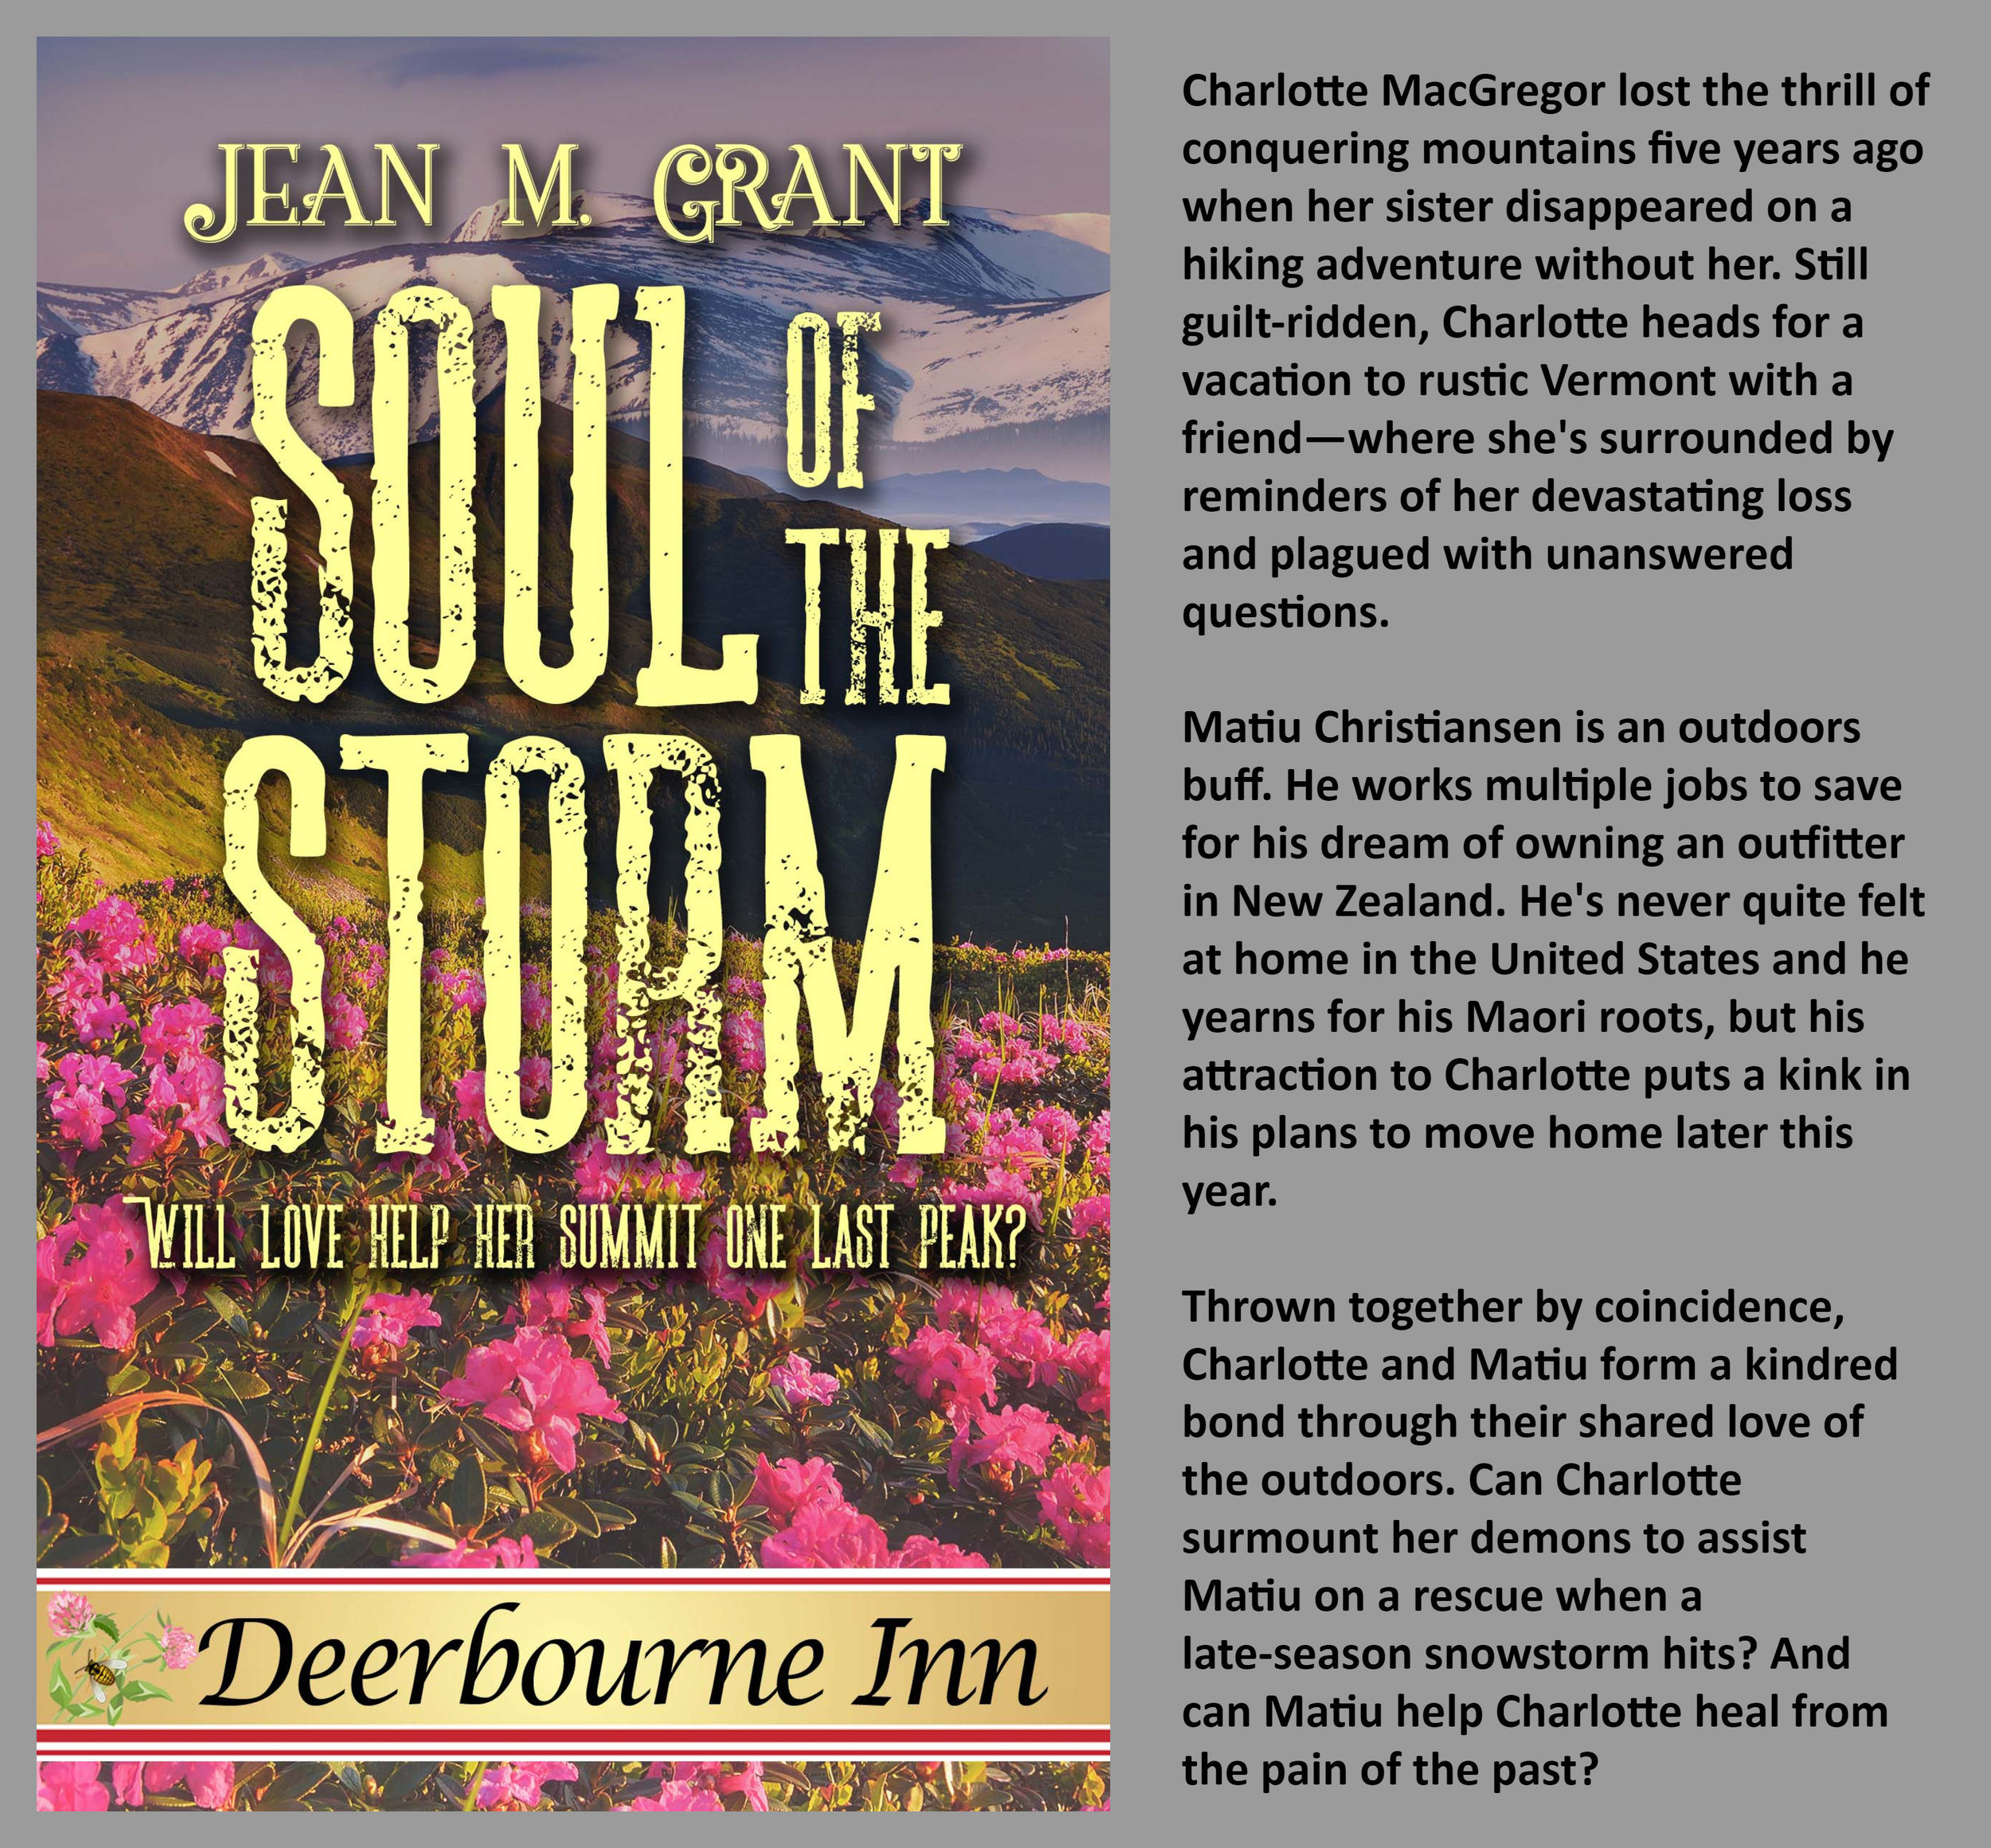 An upcoming story in the  Deerbourne Inn Series with The Wild Rose Press . Release date TBD - early spring 2019! Check out the others already out. I've read them all!